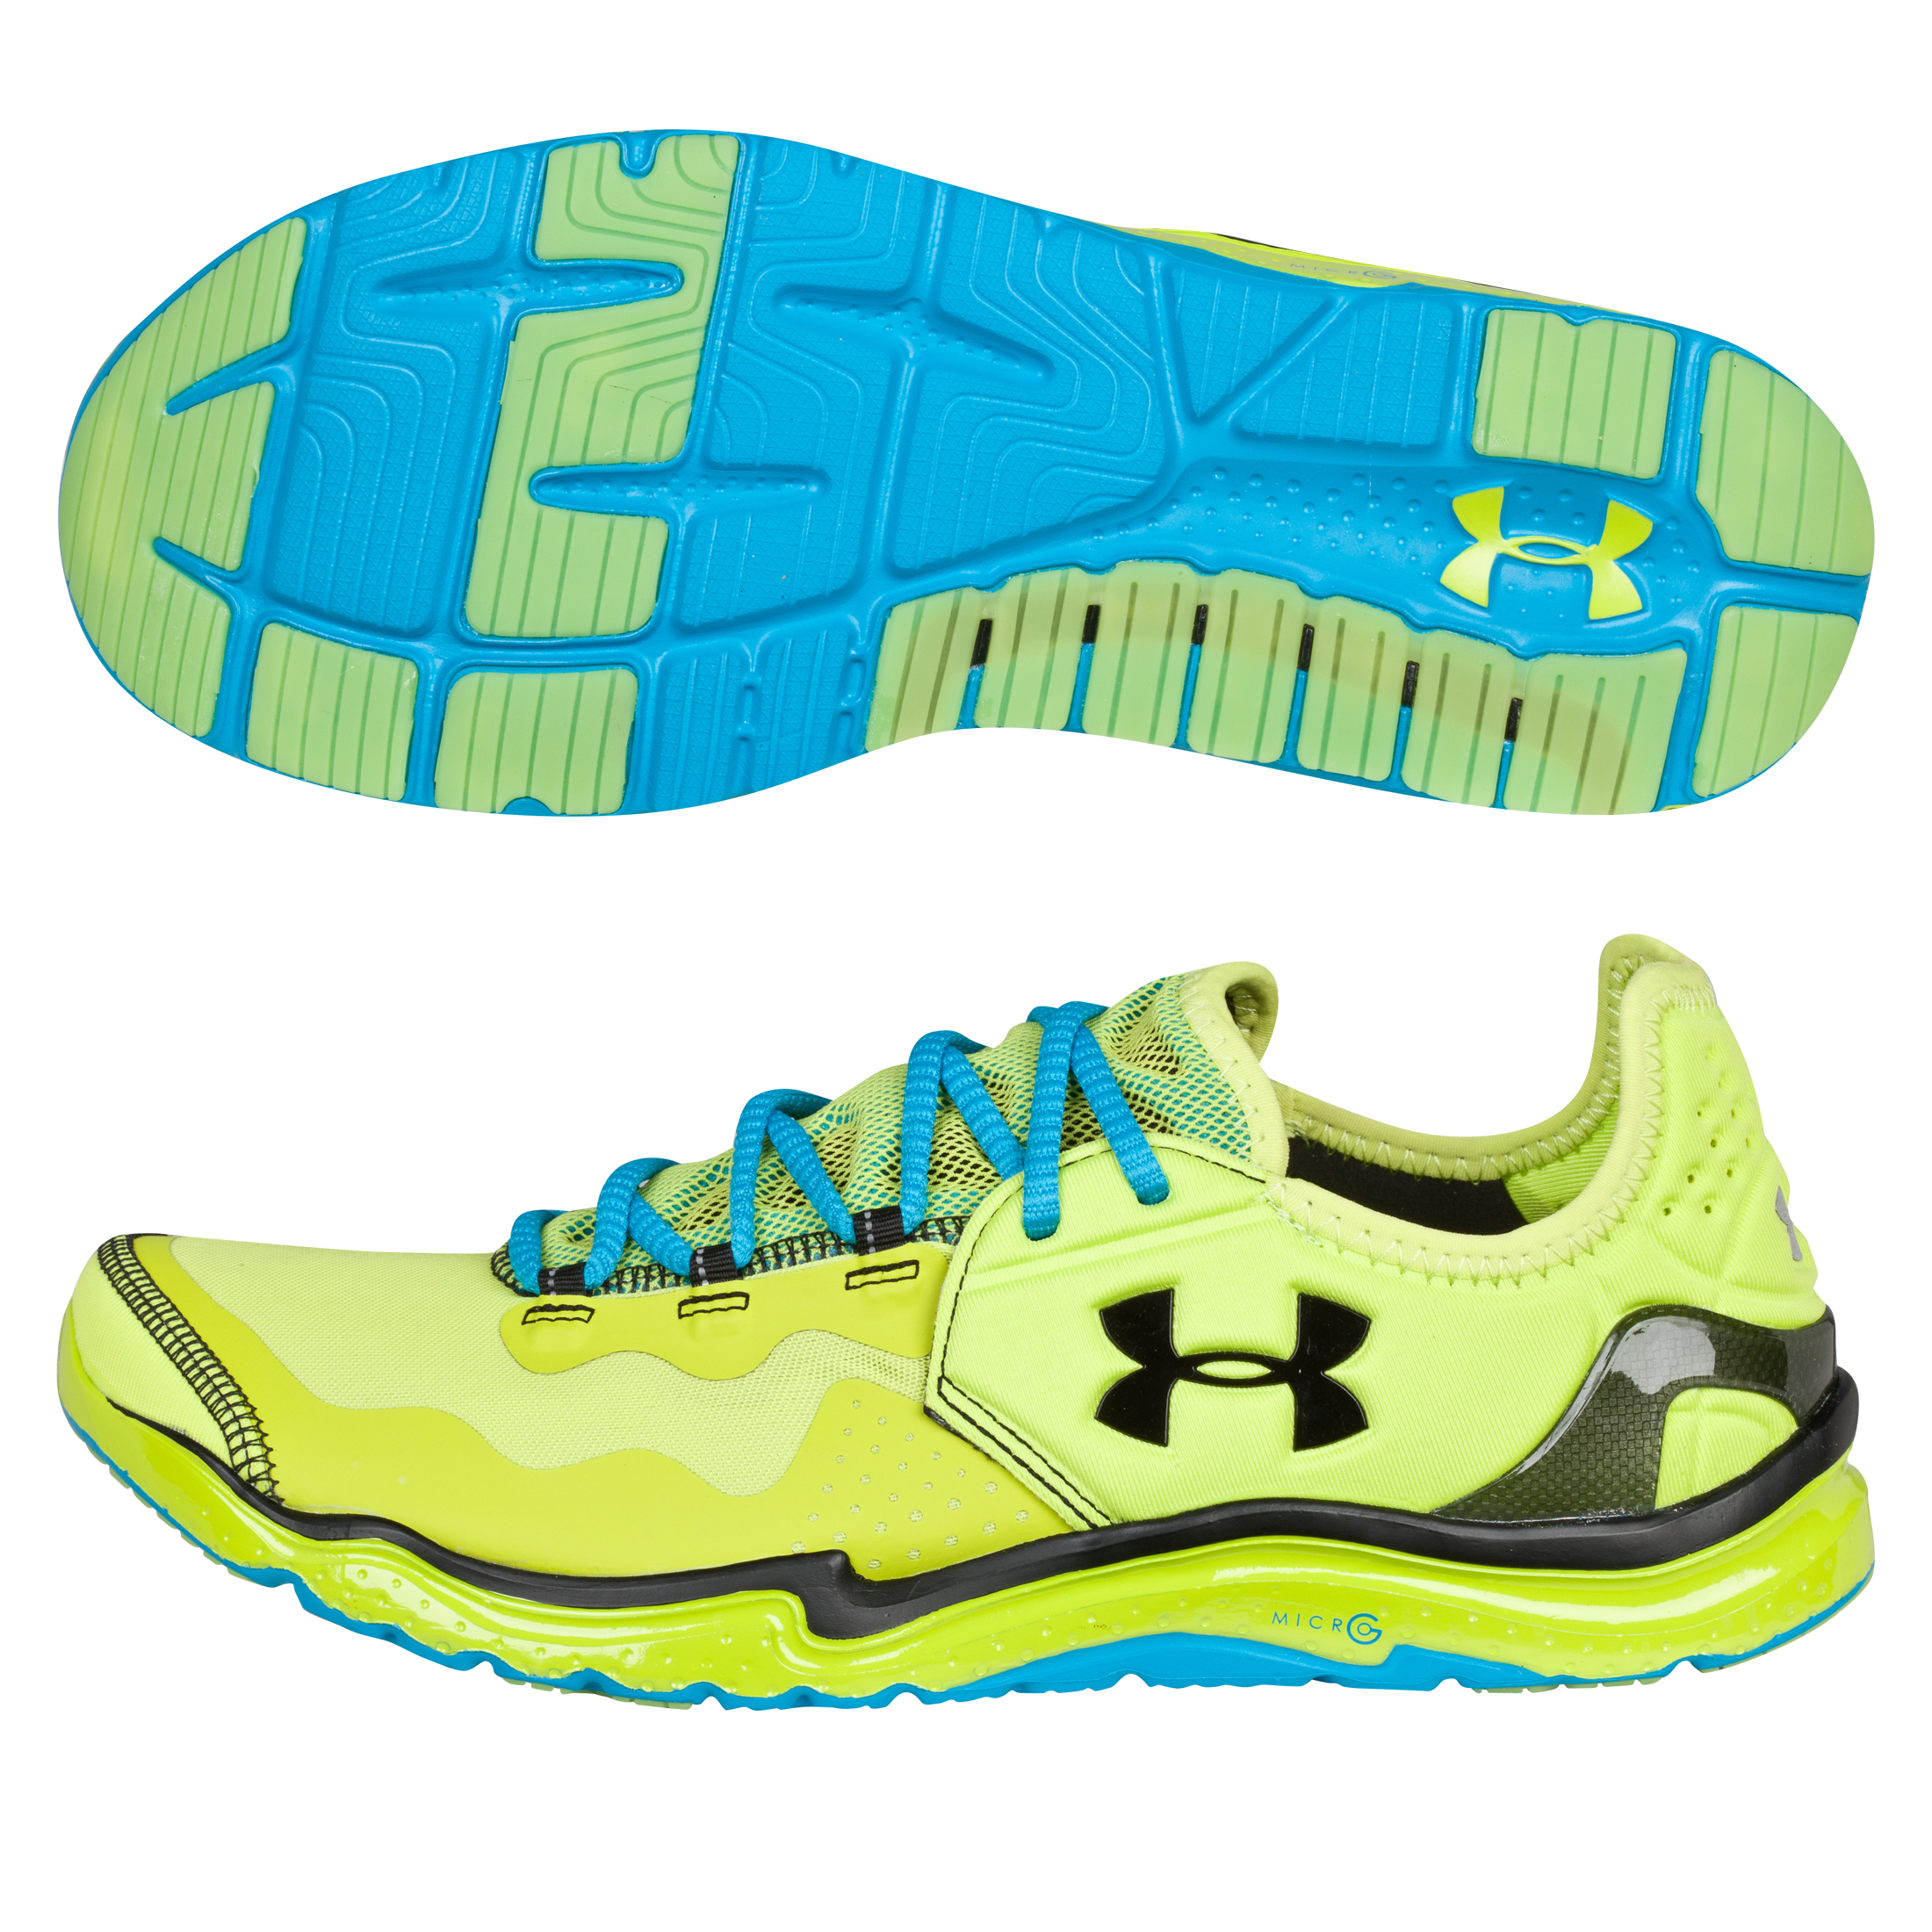 Under Armour Charge RC 2 Trainer- Bitter Lime/Blue